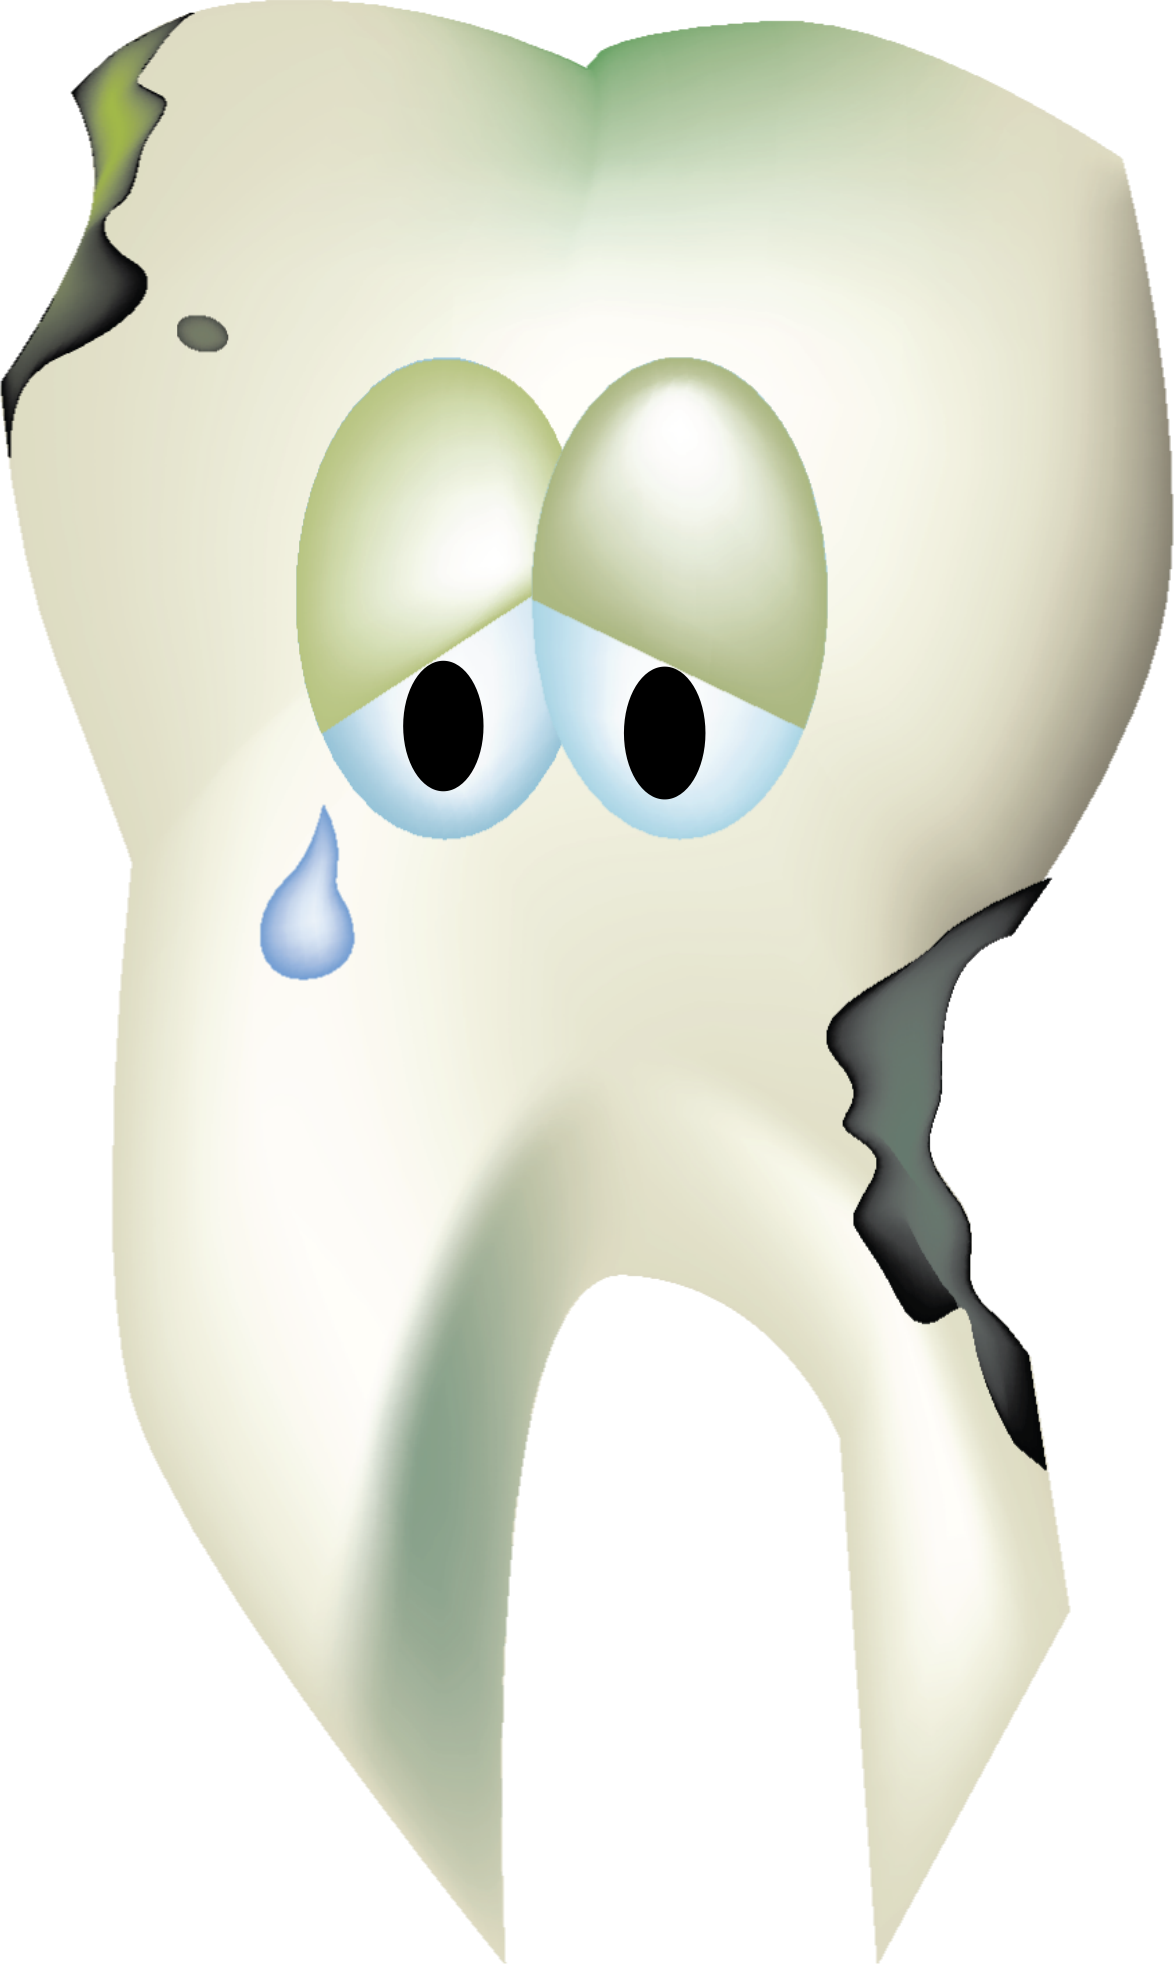 Decay clipart decayed tooth Clipart Tooth Decaying Sad Decaying